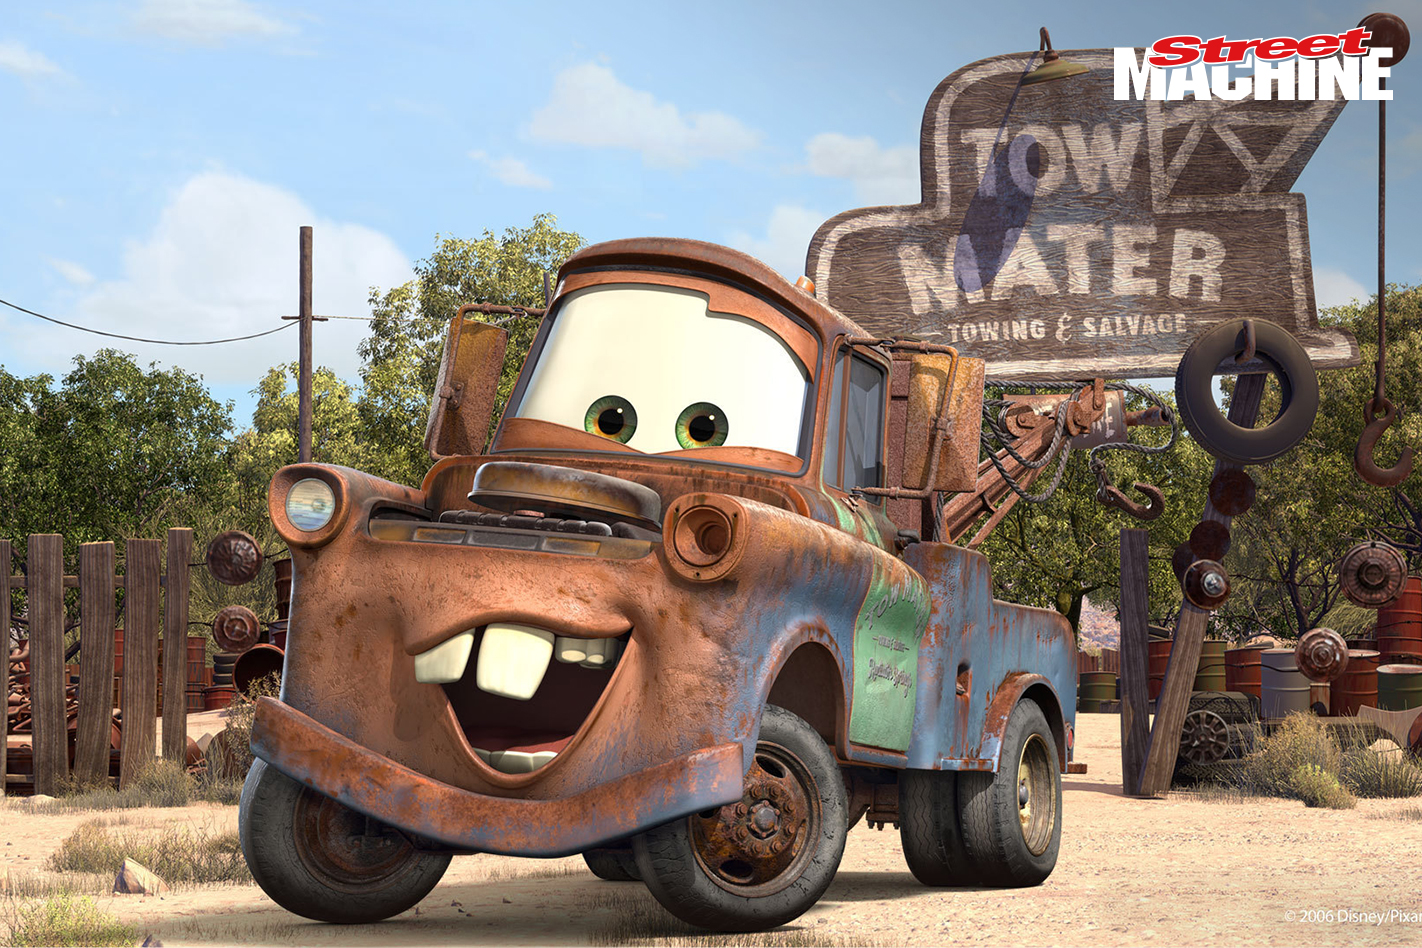 Disney-Pixar's Cars